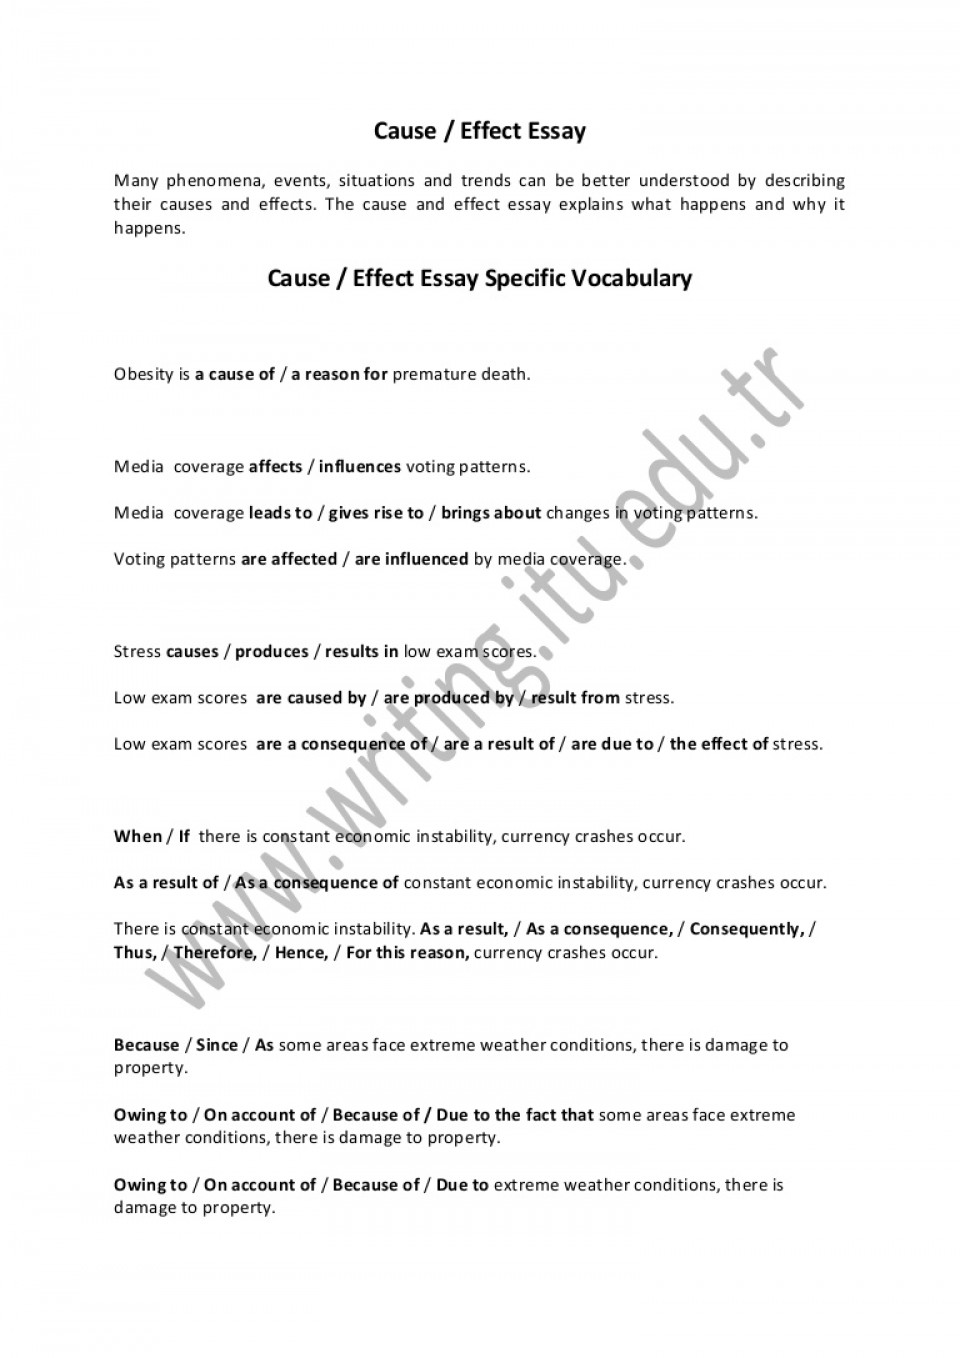 019 Essay Example Causeandeffectessay Thumbnail Cause And Effect Amazing Examples Ielts Pdf On Stress 960